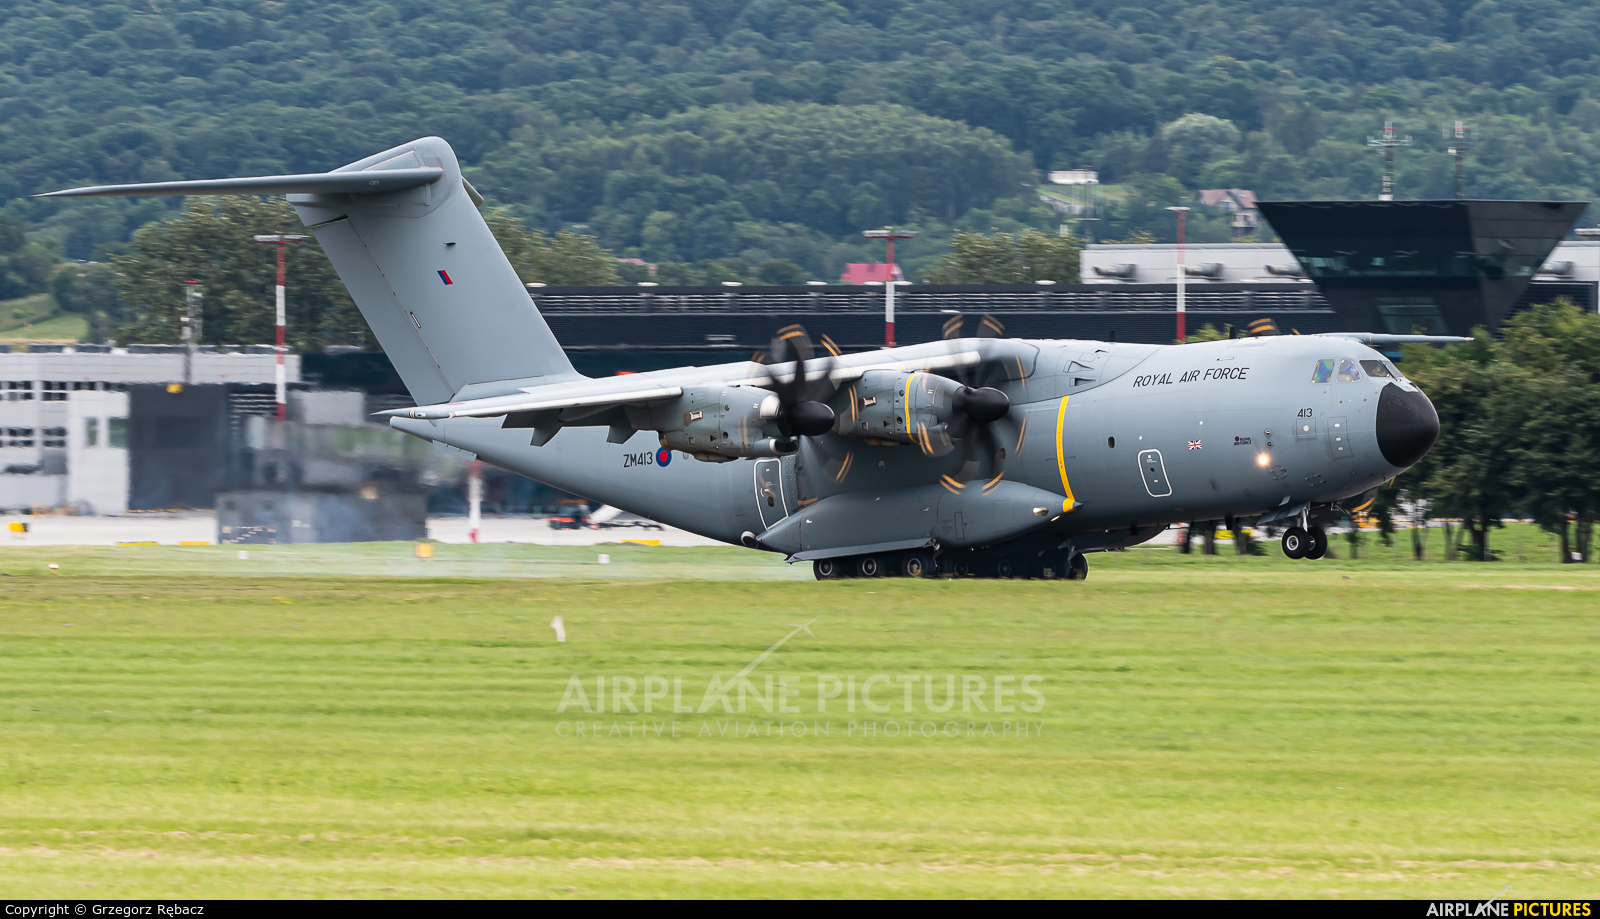 Royal Air Force ZM413 aircraft at Kraków - John Paul II Intl